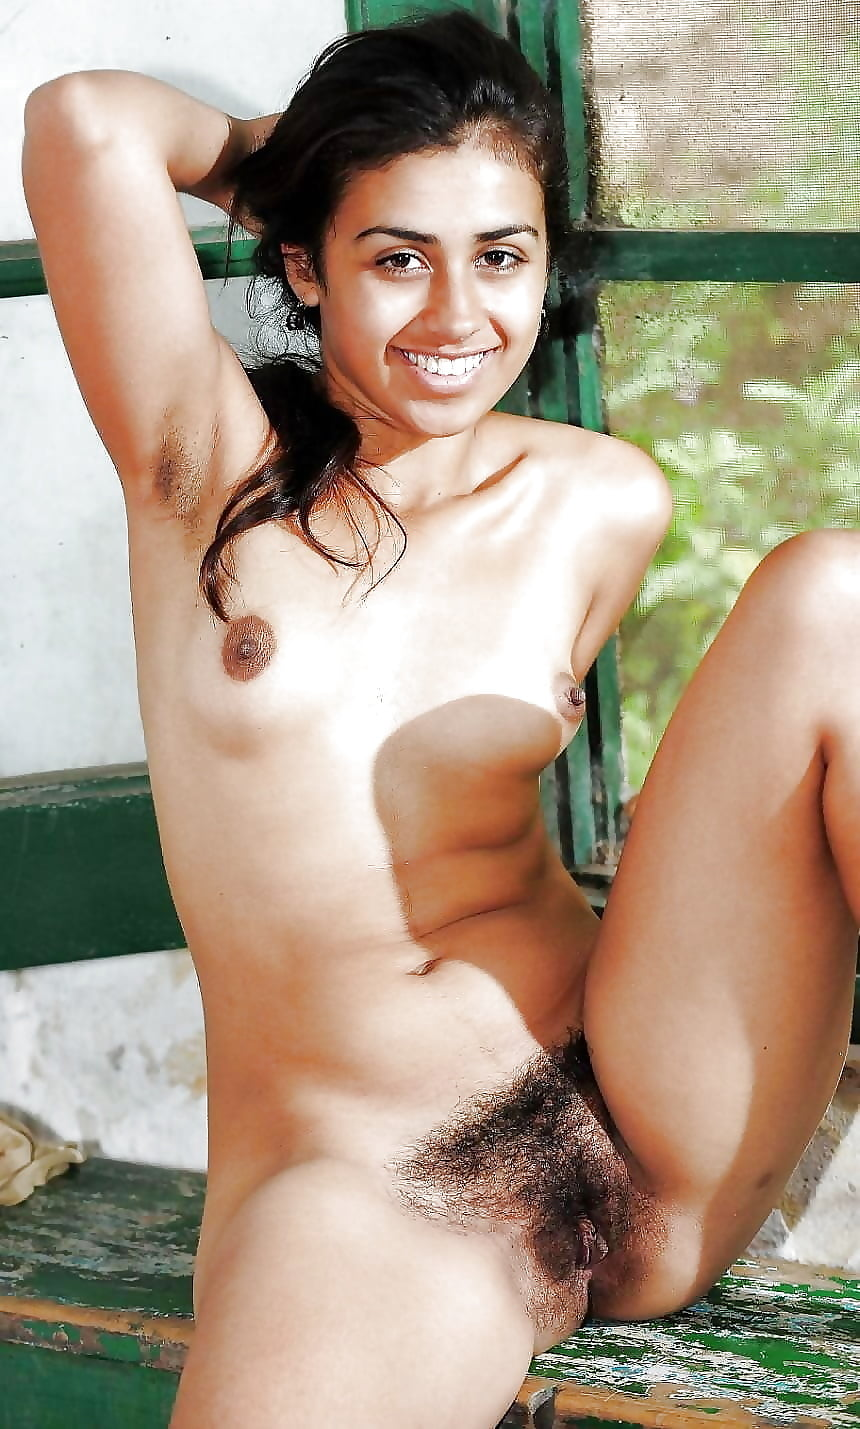 Desi Very Hairy Girls Nude Photos